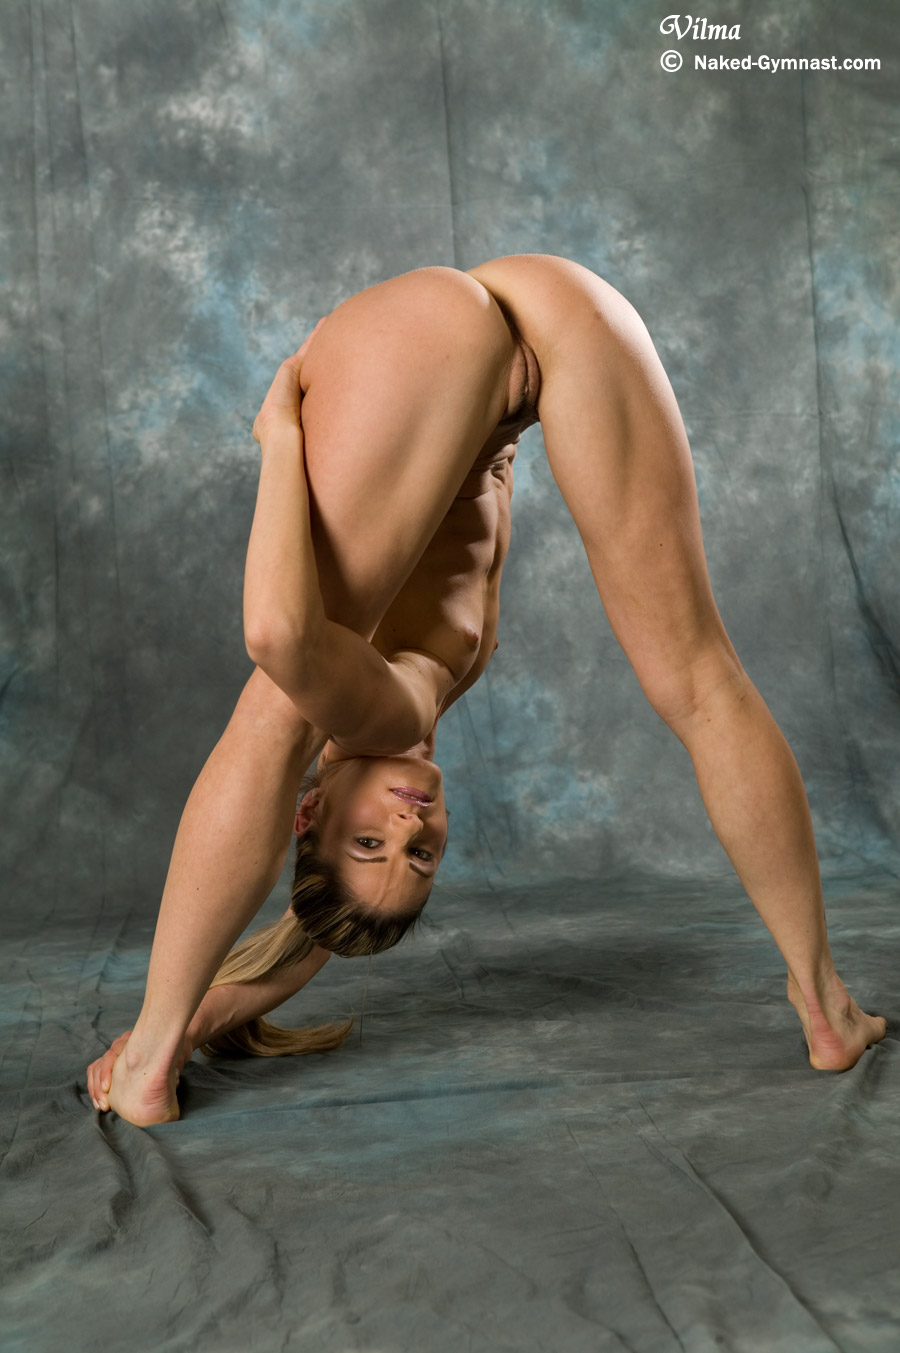 Naked flexible gymnasts pics